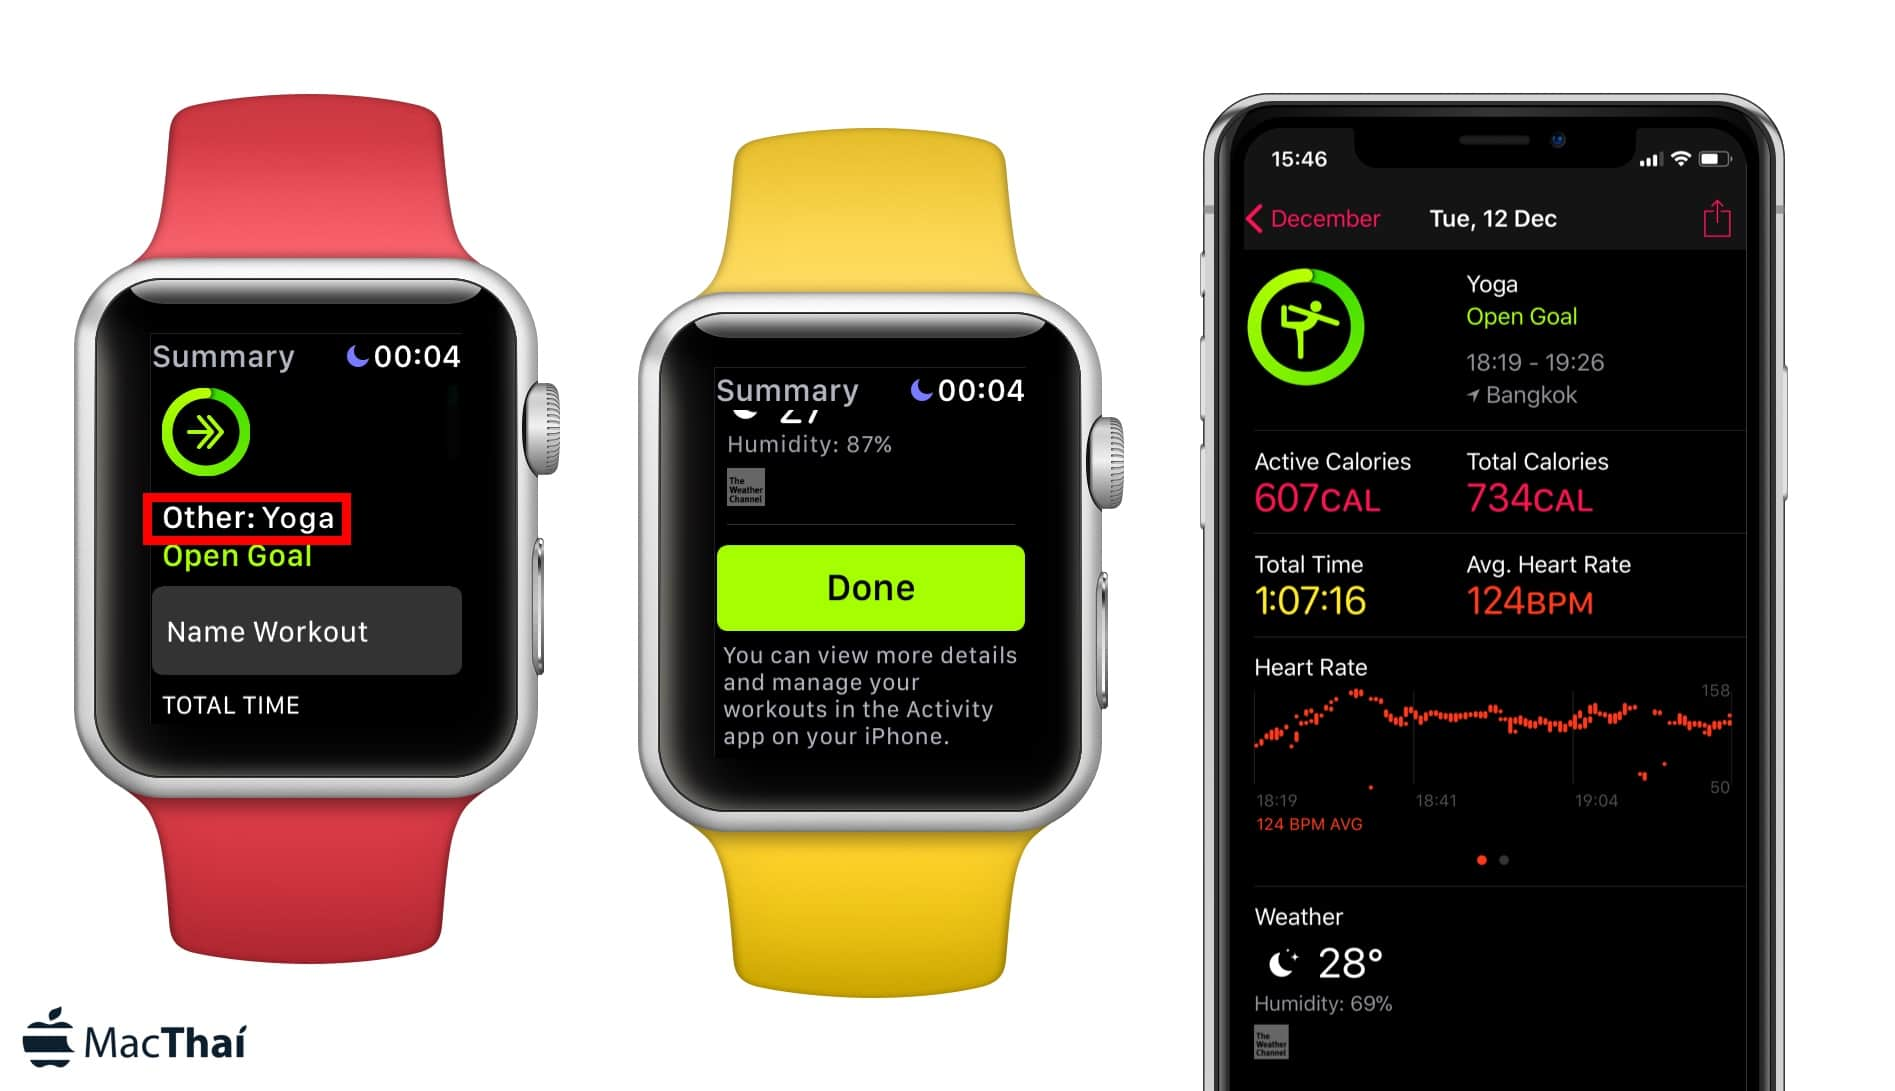 other sport workouts apple watch-4